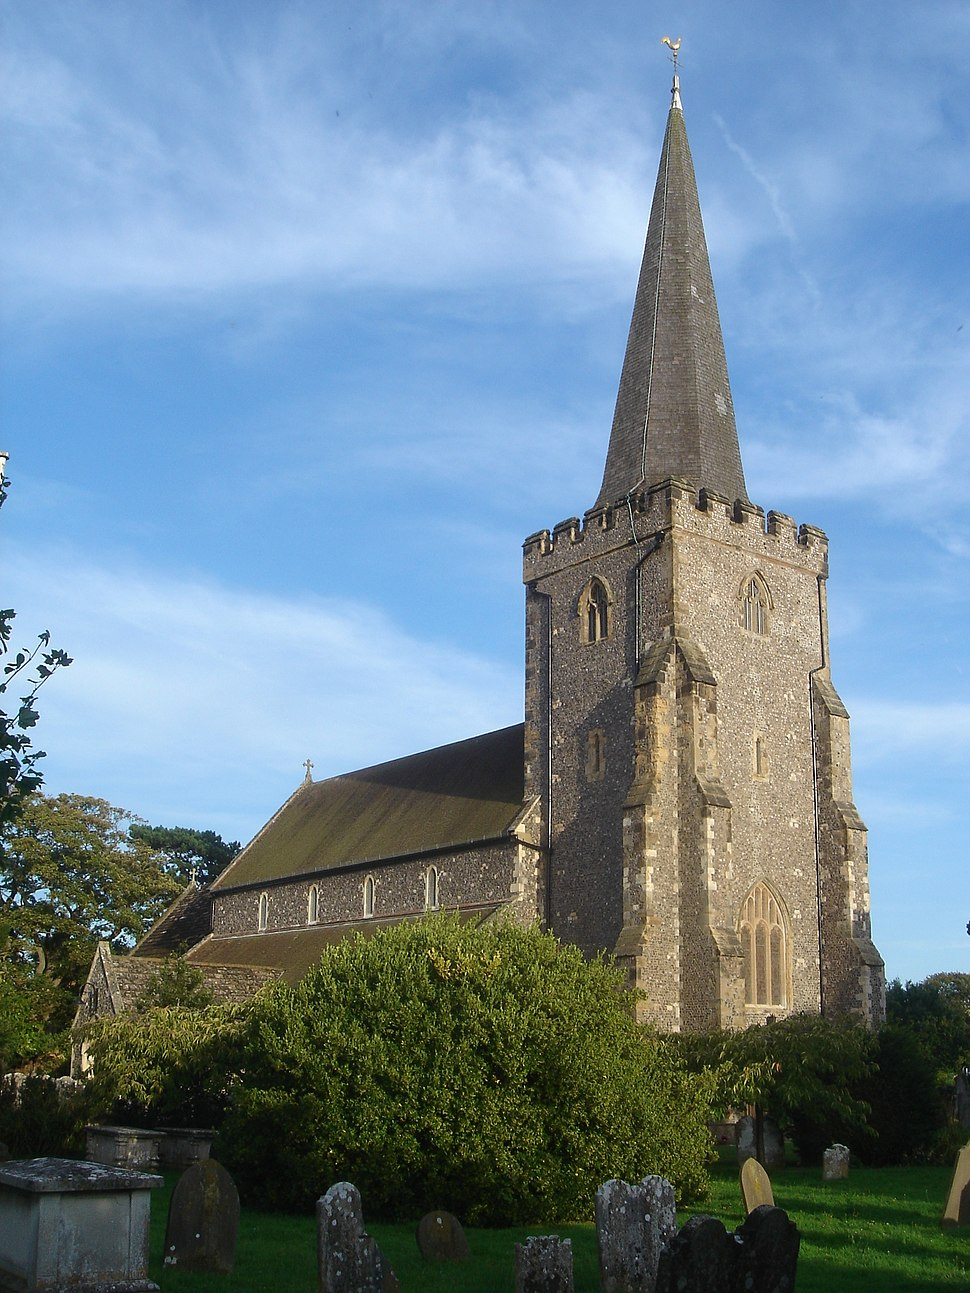 St Andrew's Church, West Tarring, Worthing